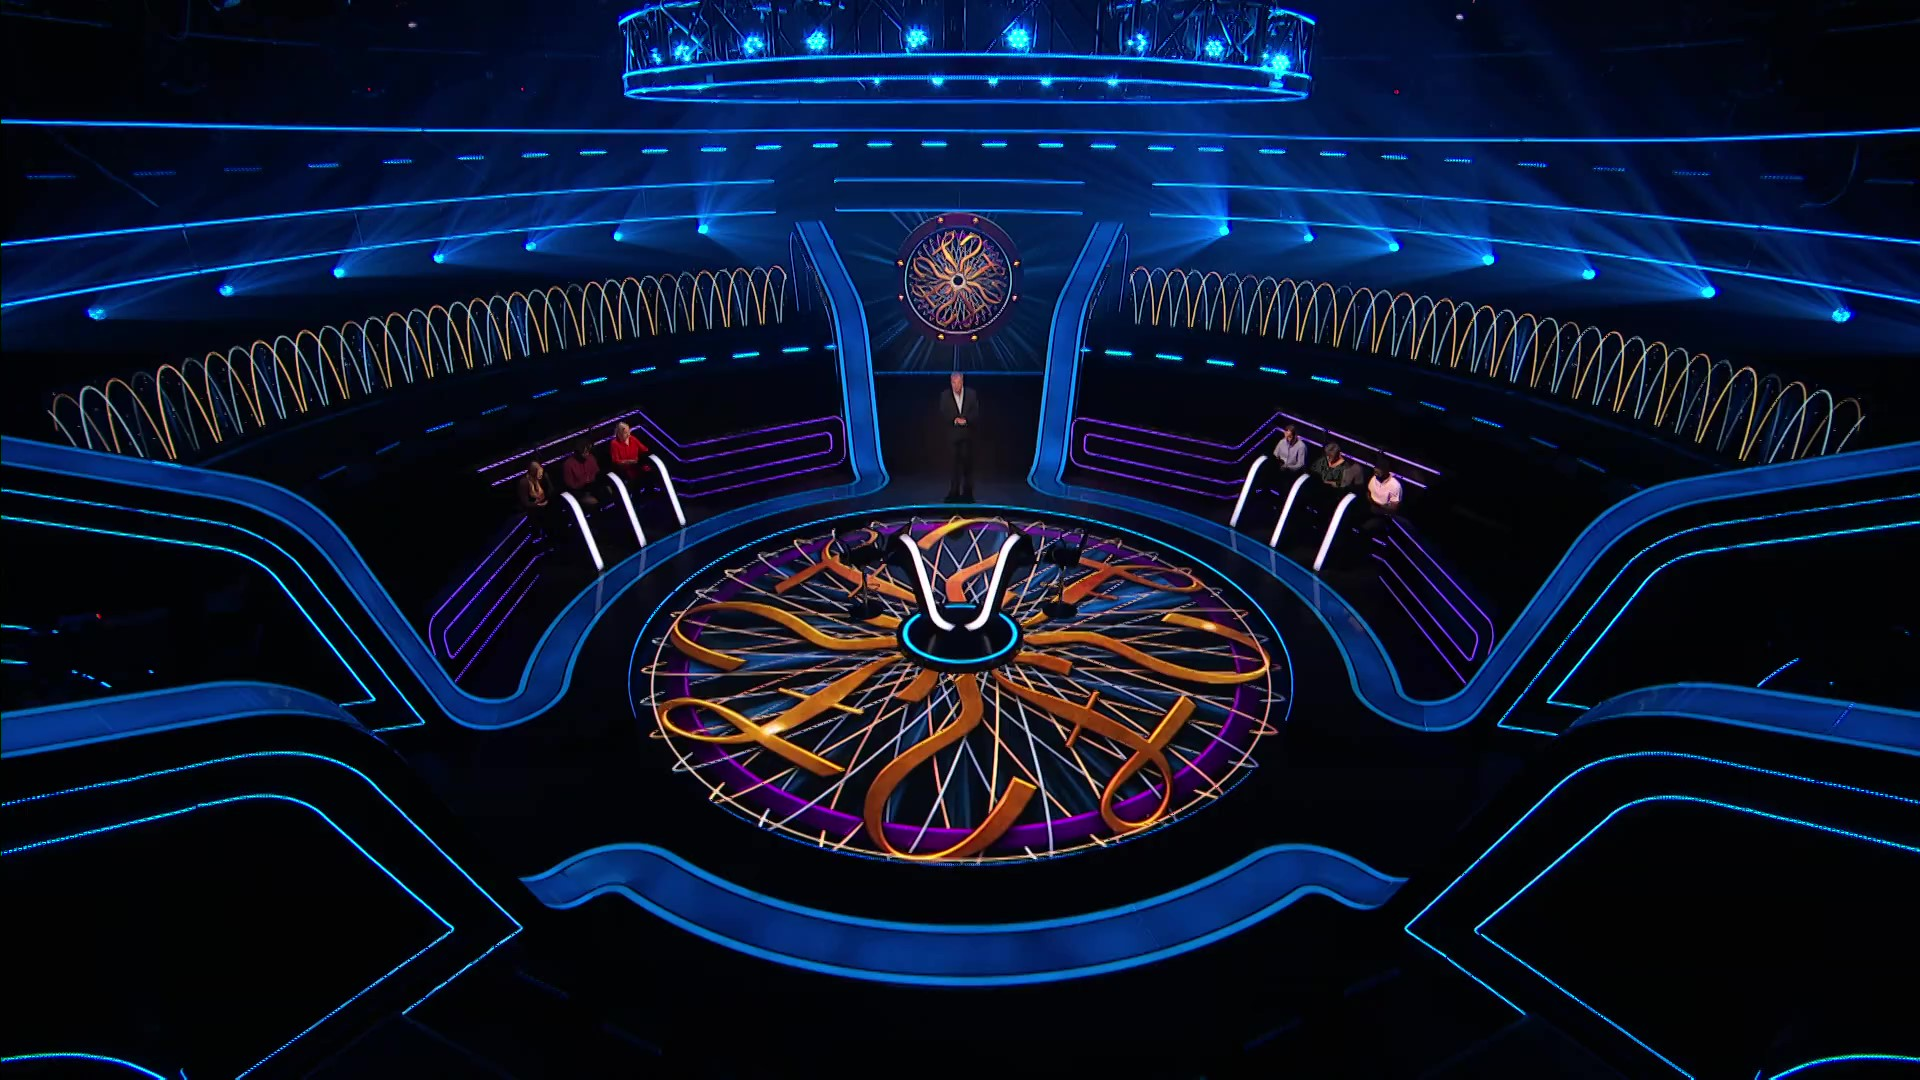 Who Wants To Be A Millionaire - Saturday, July 17, 2021_Mo1ment.jpg